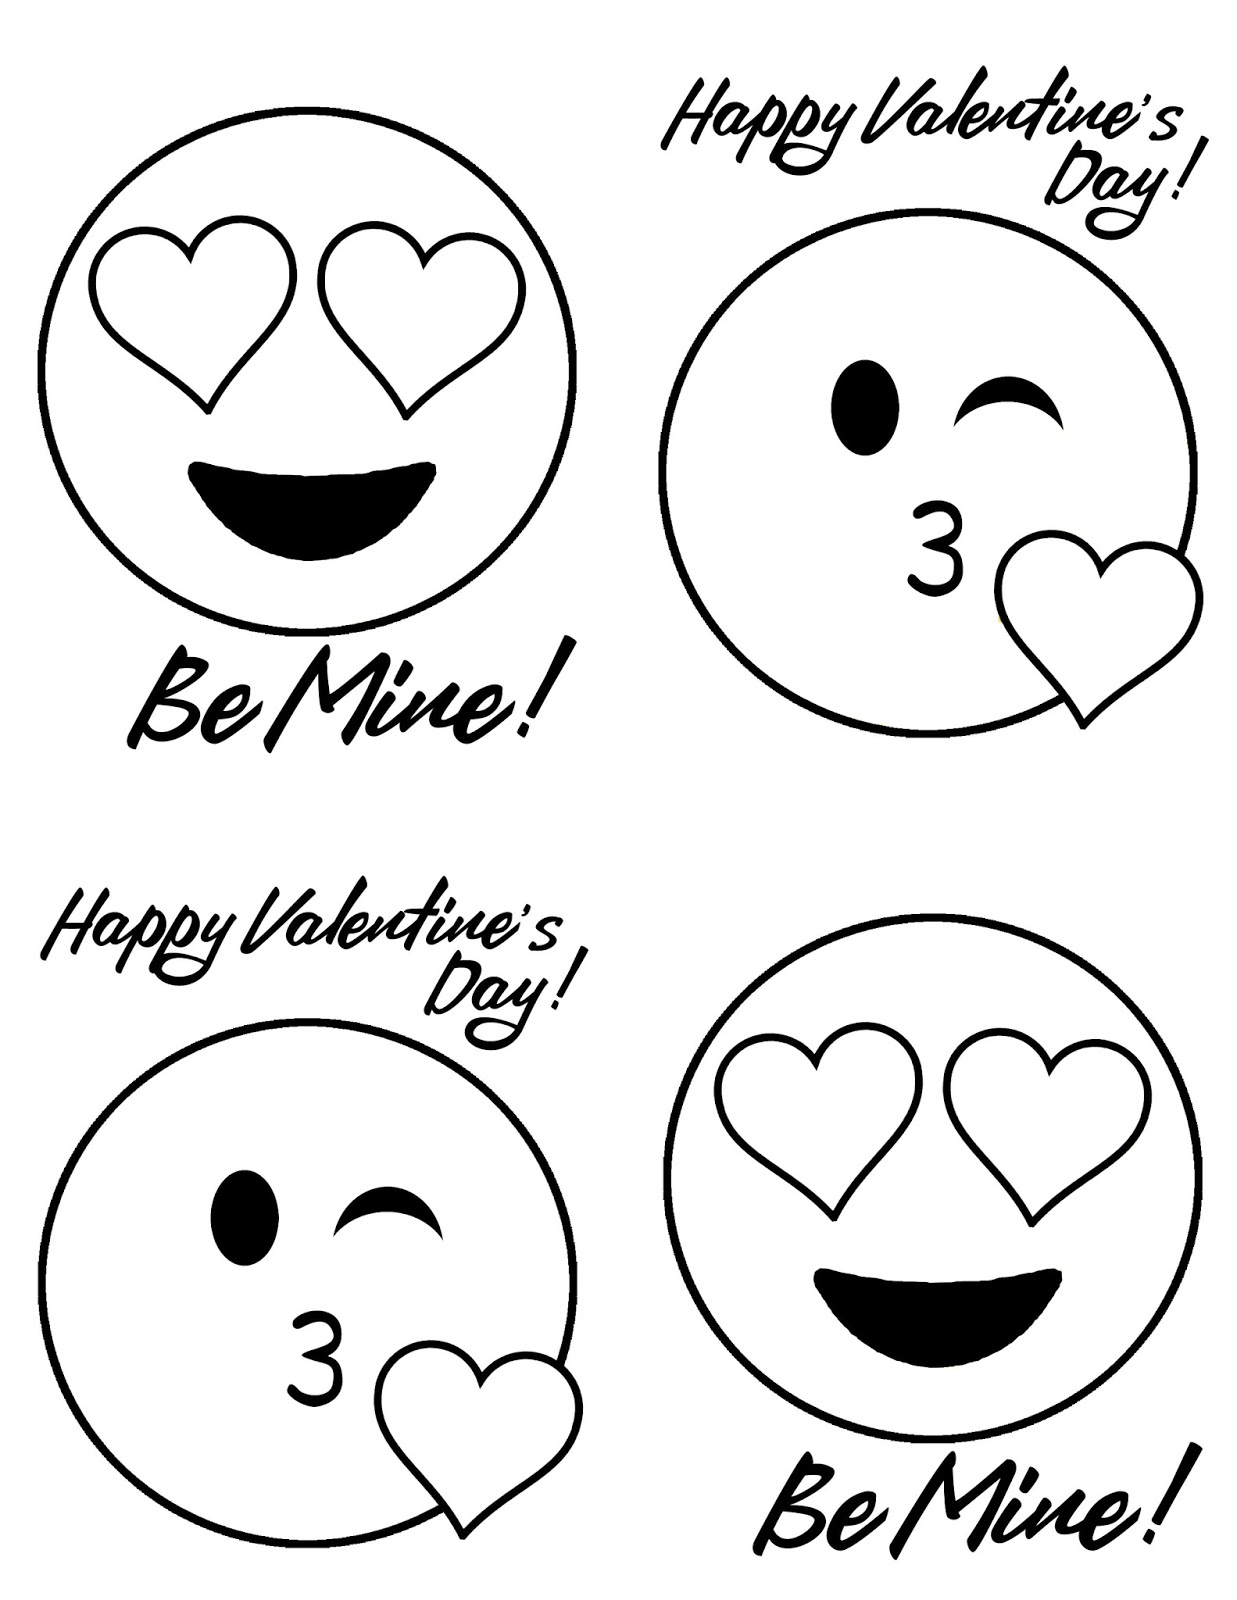 Doodlecraft: Emoji Valentine's with Free Printable!